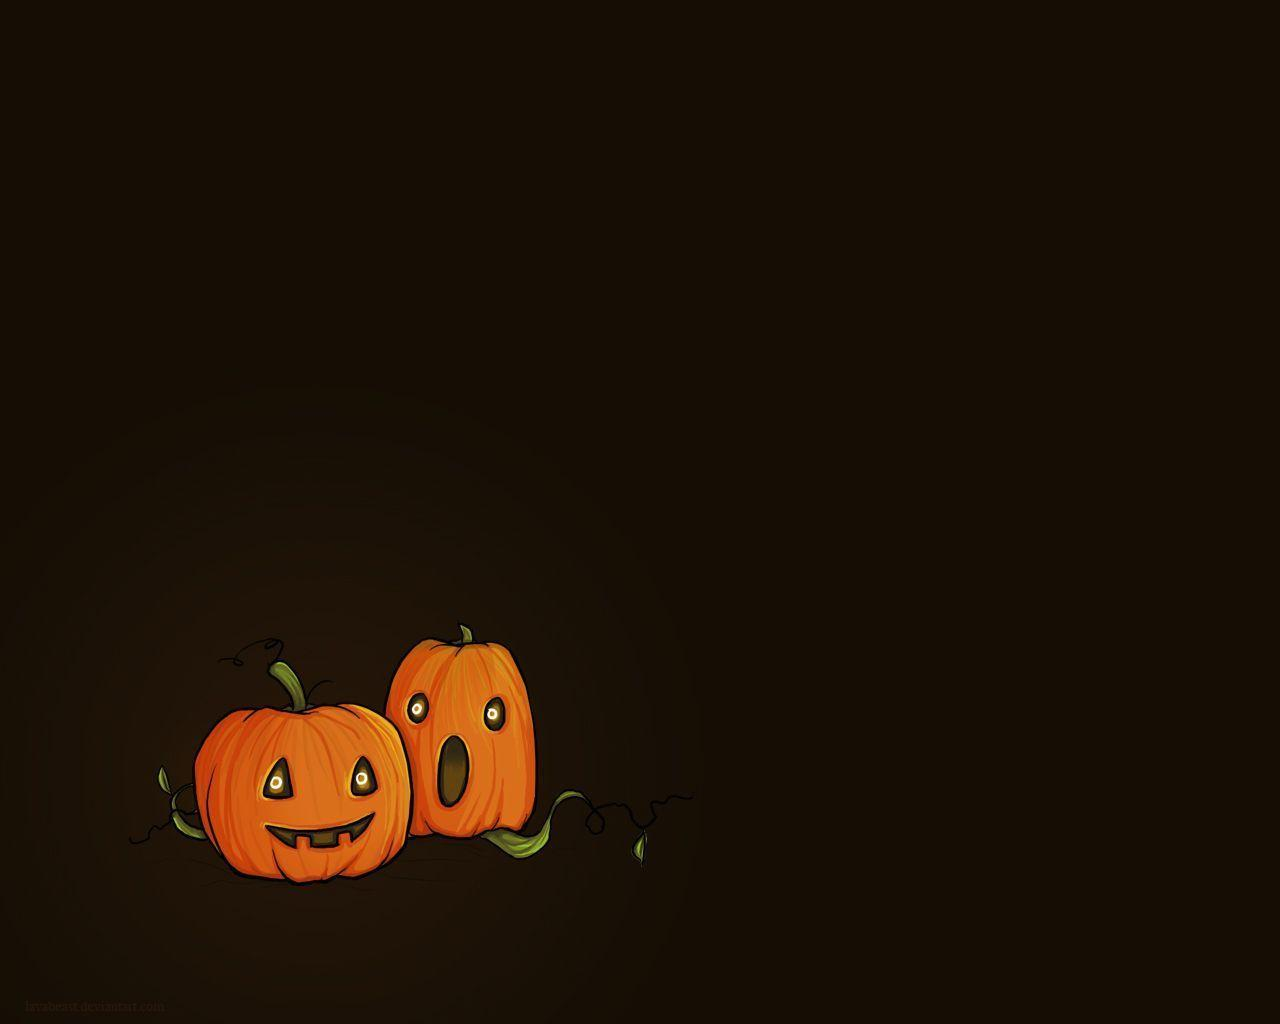 cute halloween wallpaper-#6